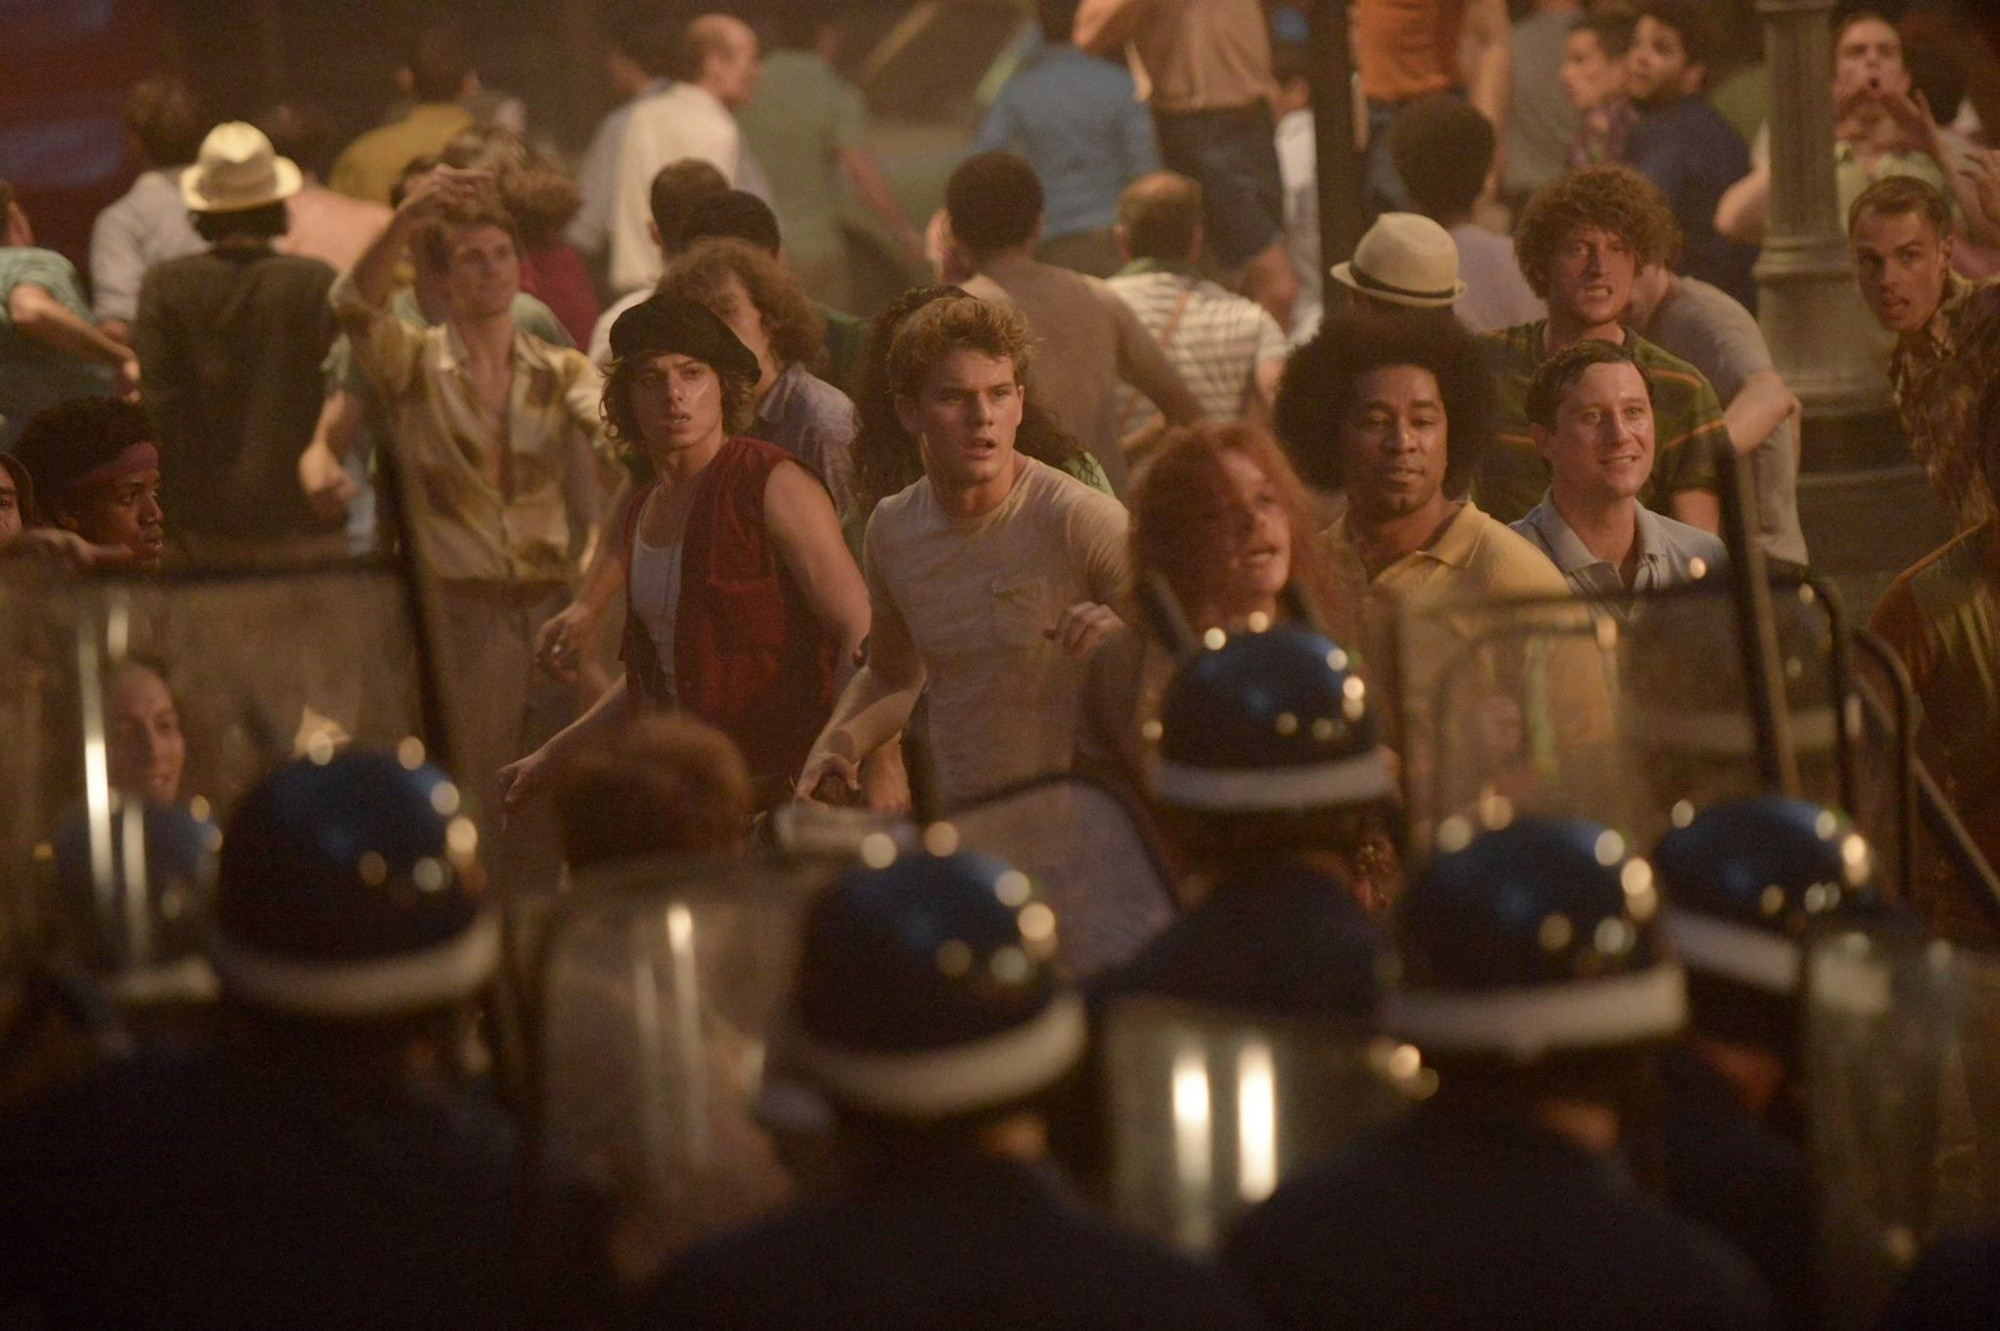 Jeremy Irvine plays the bland cypher at the centre of Roland Emmerich's underwhelming portrayal of the origins of America's gay rights movement, Stonewall .